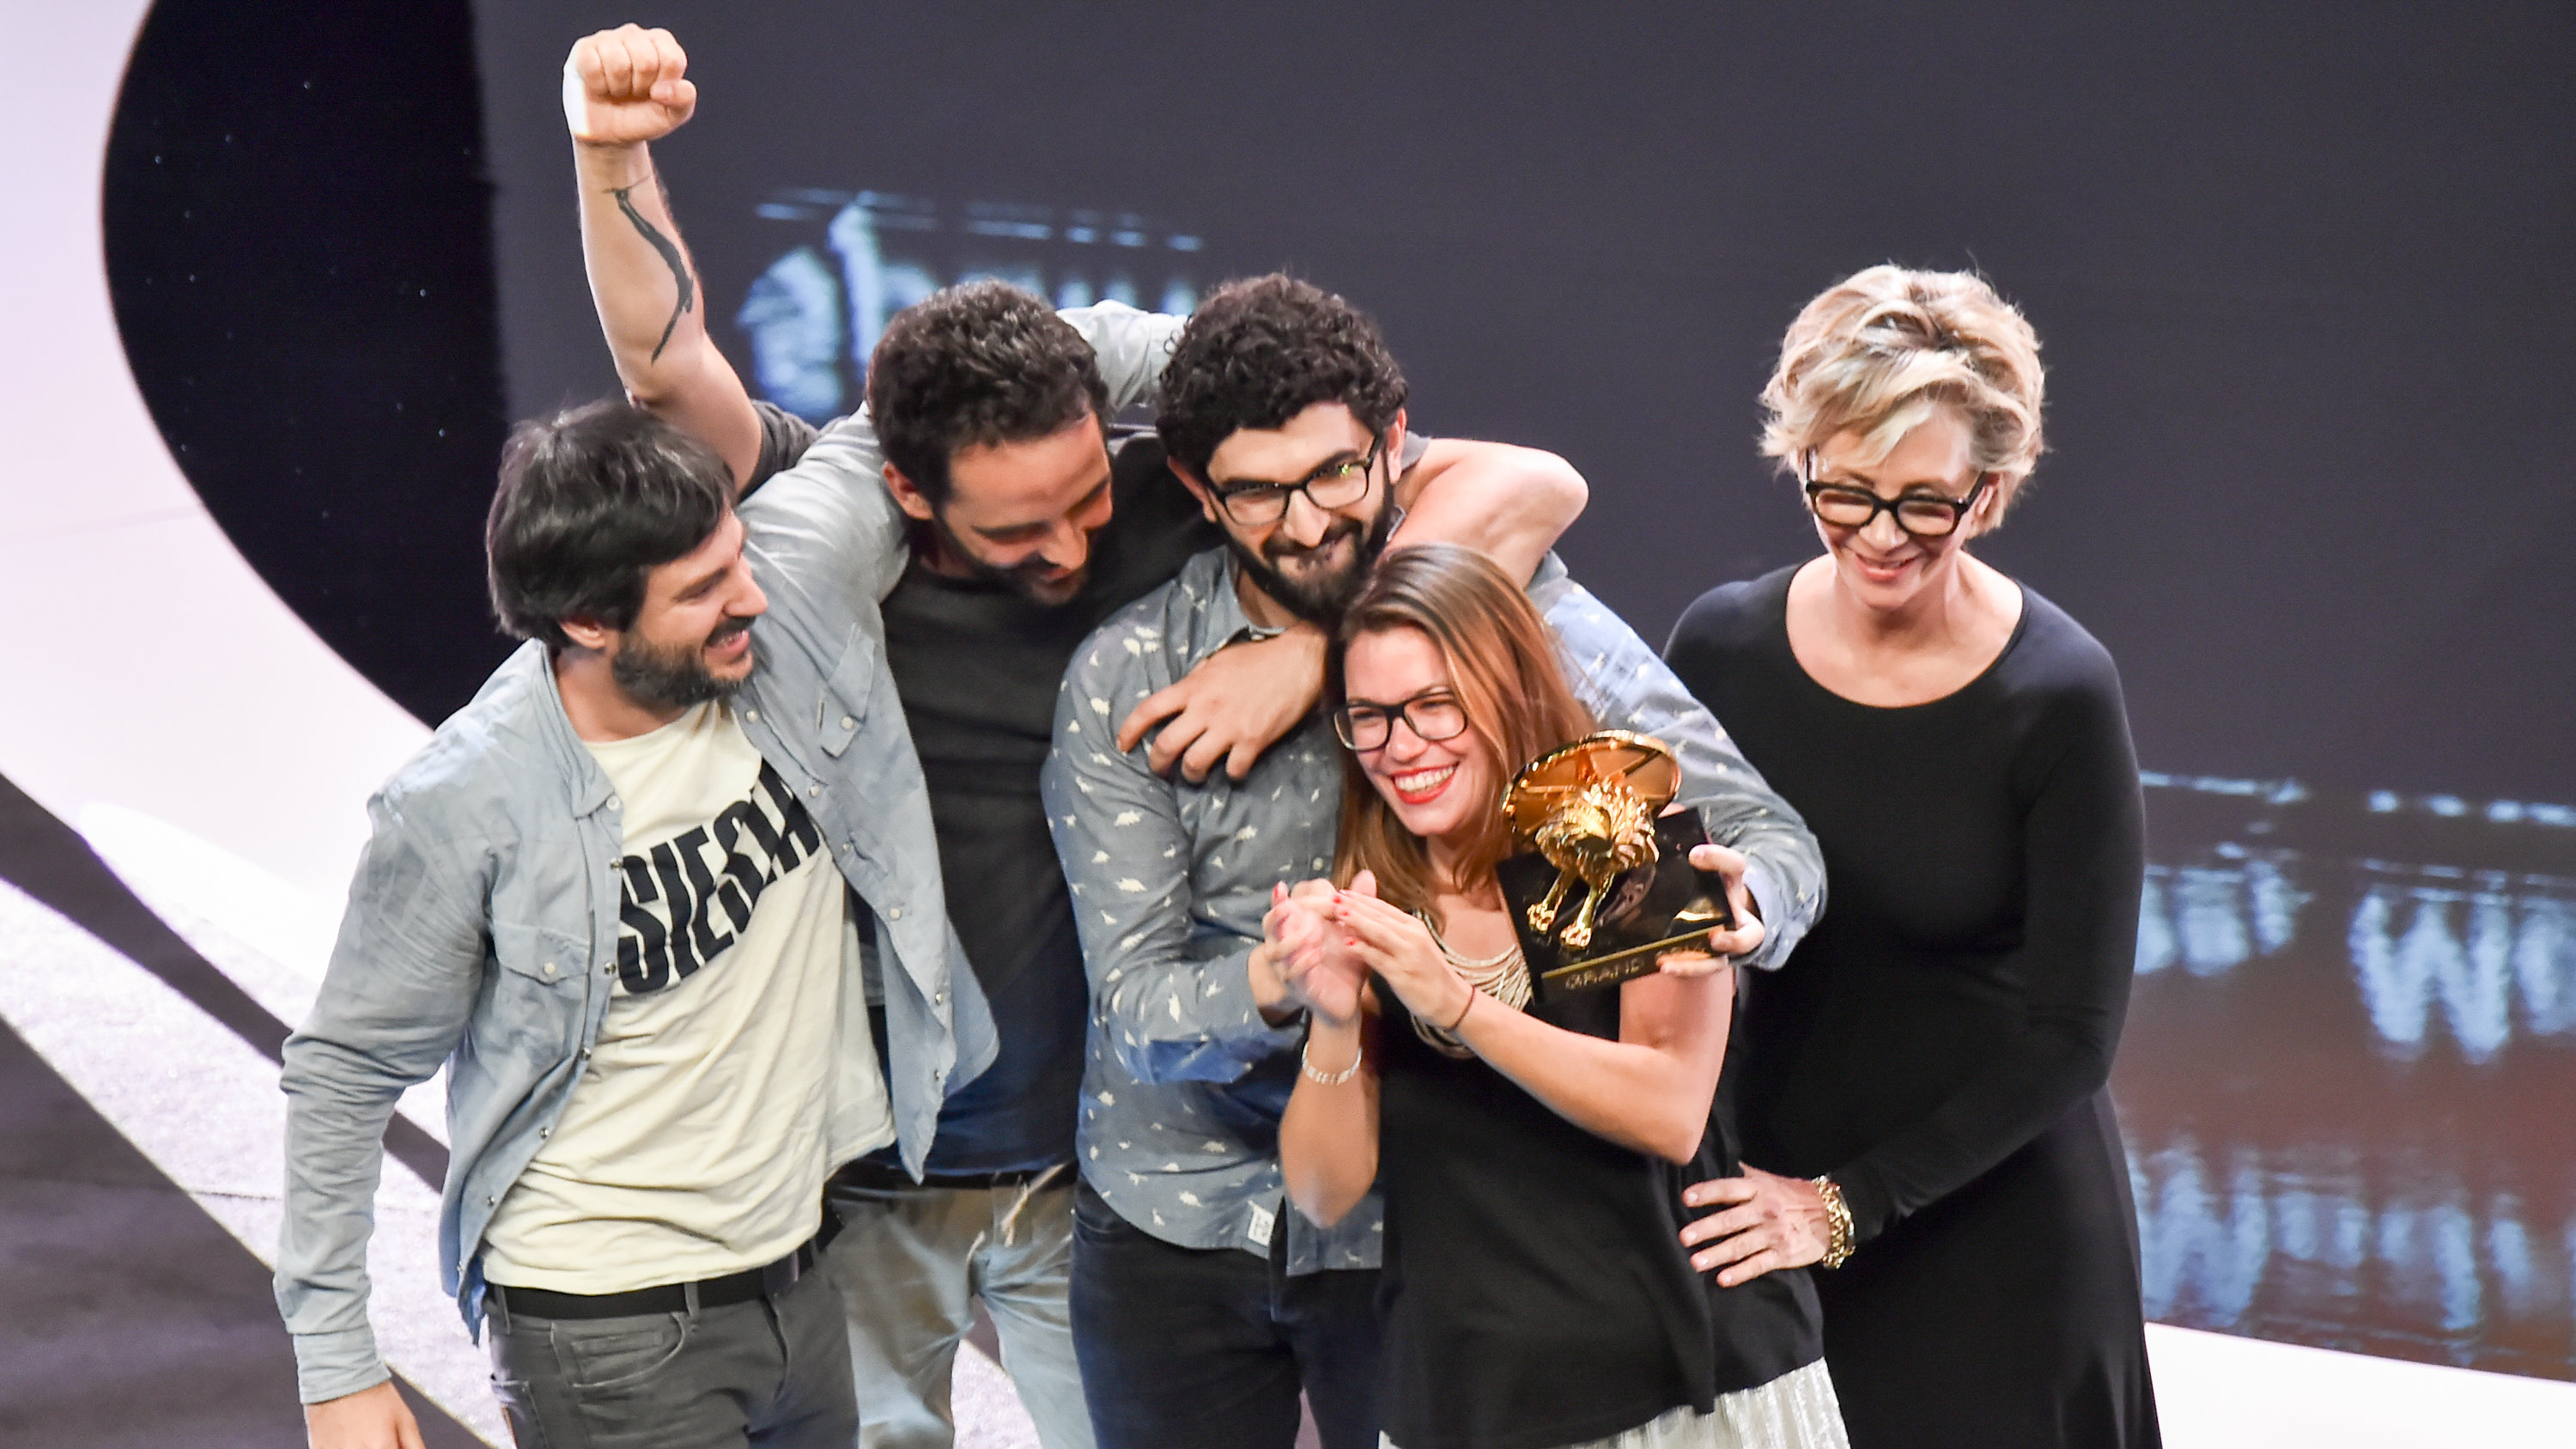 Cannes Lions 2018 Grand Prix award winners on stage